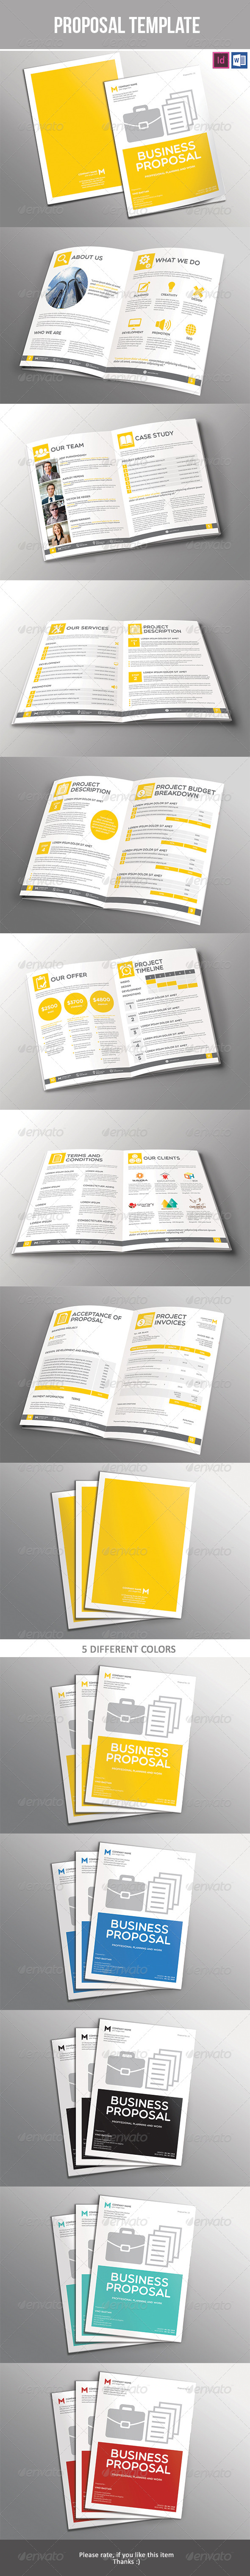 GraphicRiver Proposal Template 7442191